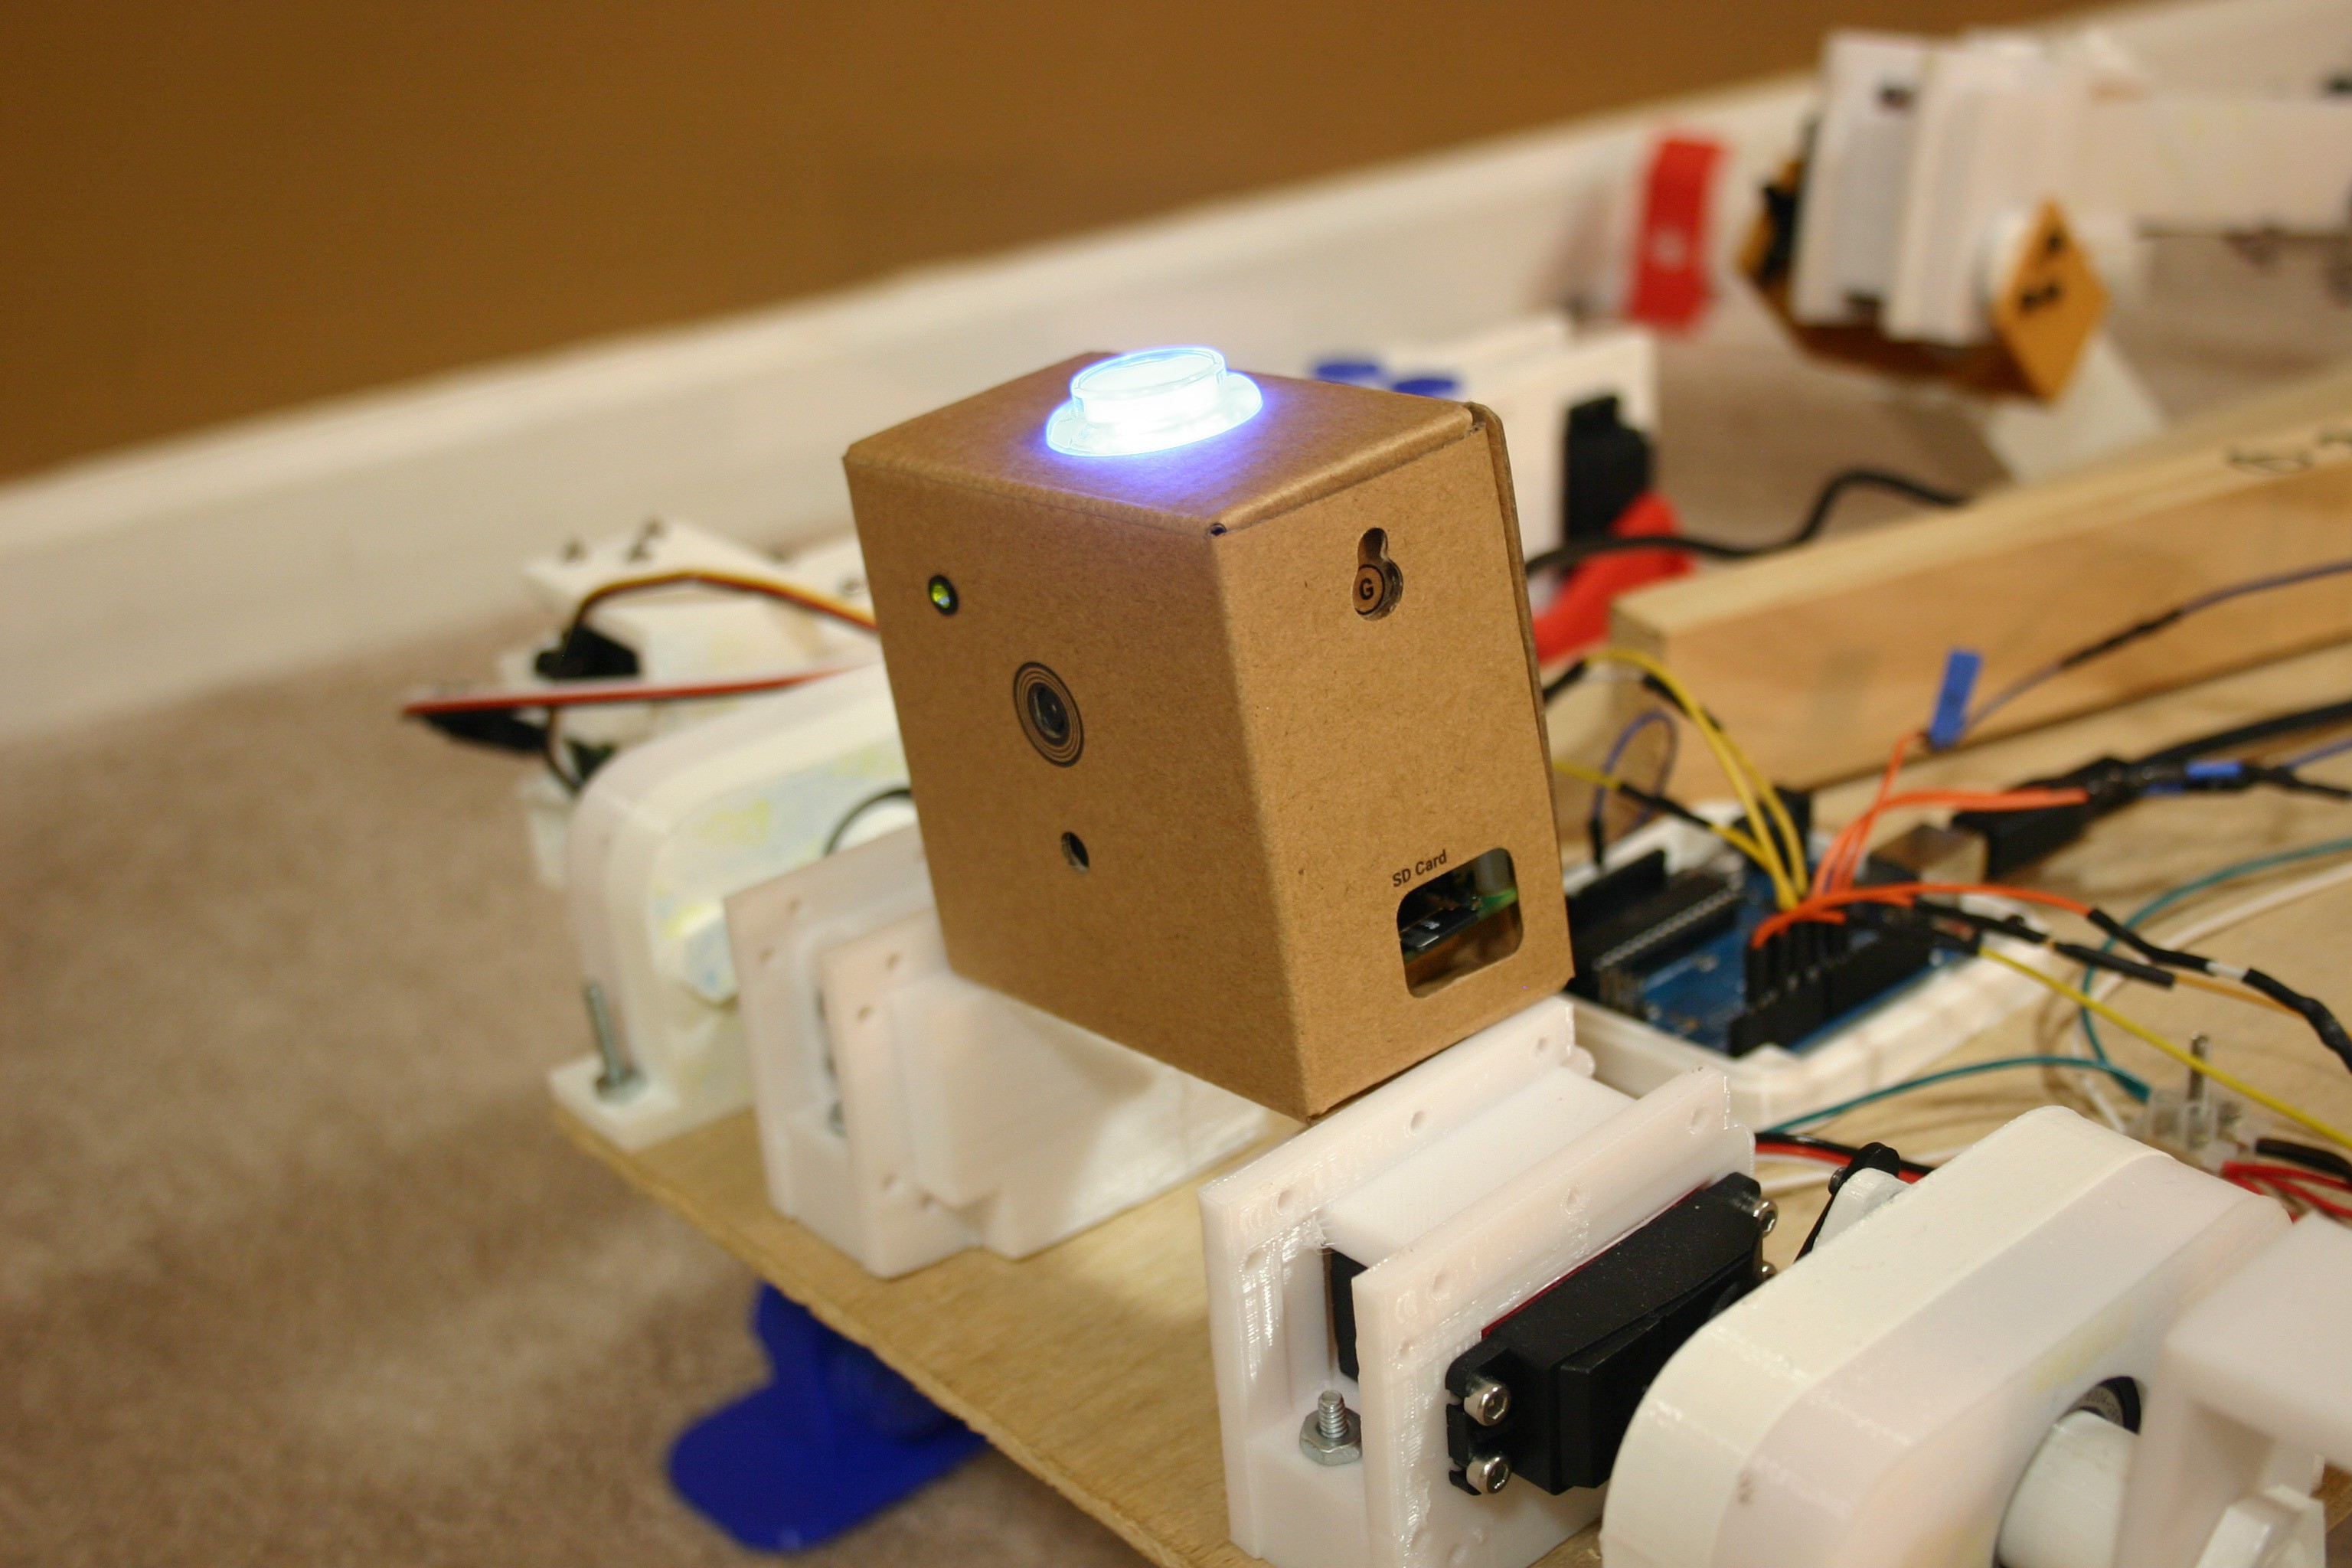 Mikes Robot Dog Piezo Speaker With Distorted Sound Electrical Engineering Stack When There Is A Smile The Light Turns Yellow Big Will Turn Bright And Trigger Buzzer